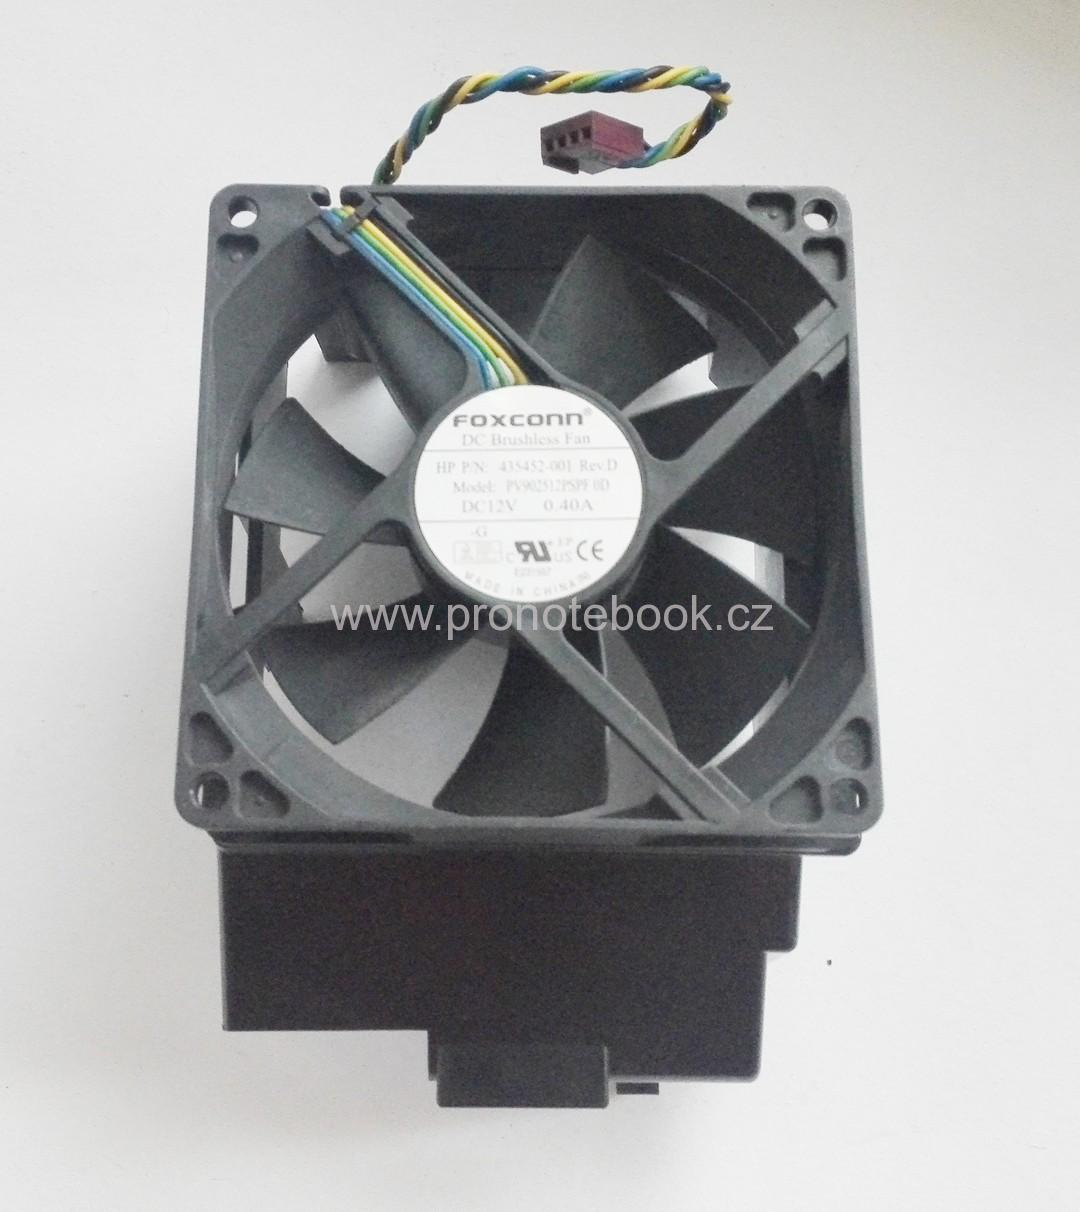 Foxconn HP P/N 435452-001, 92mm x 25mm fan, PV902512PSPF 0D, DC12V 4-pin